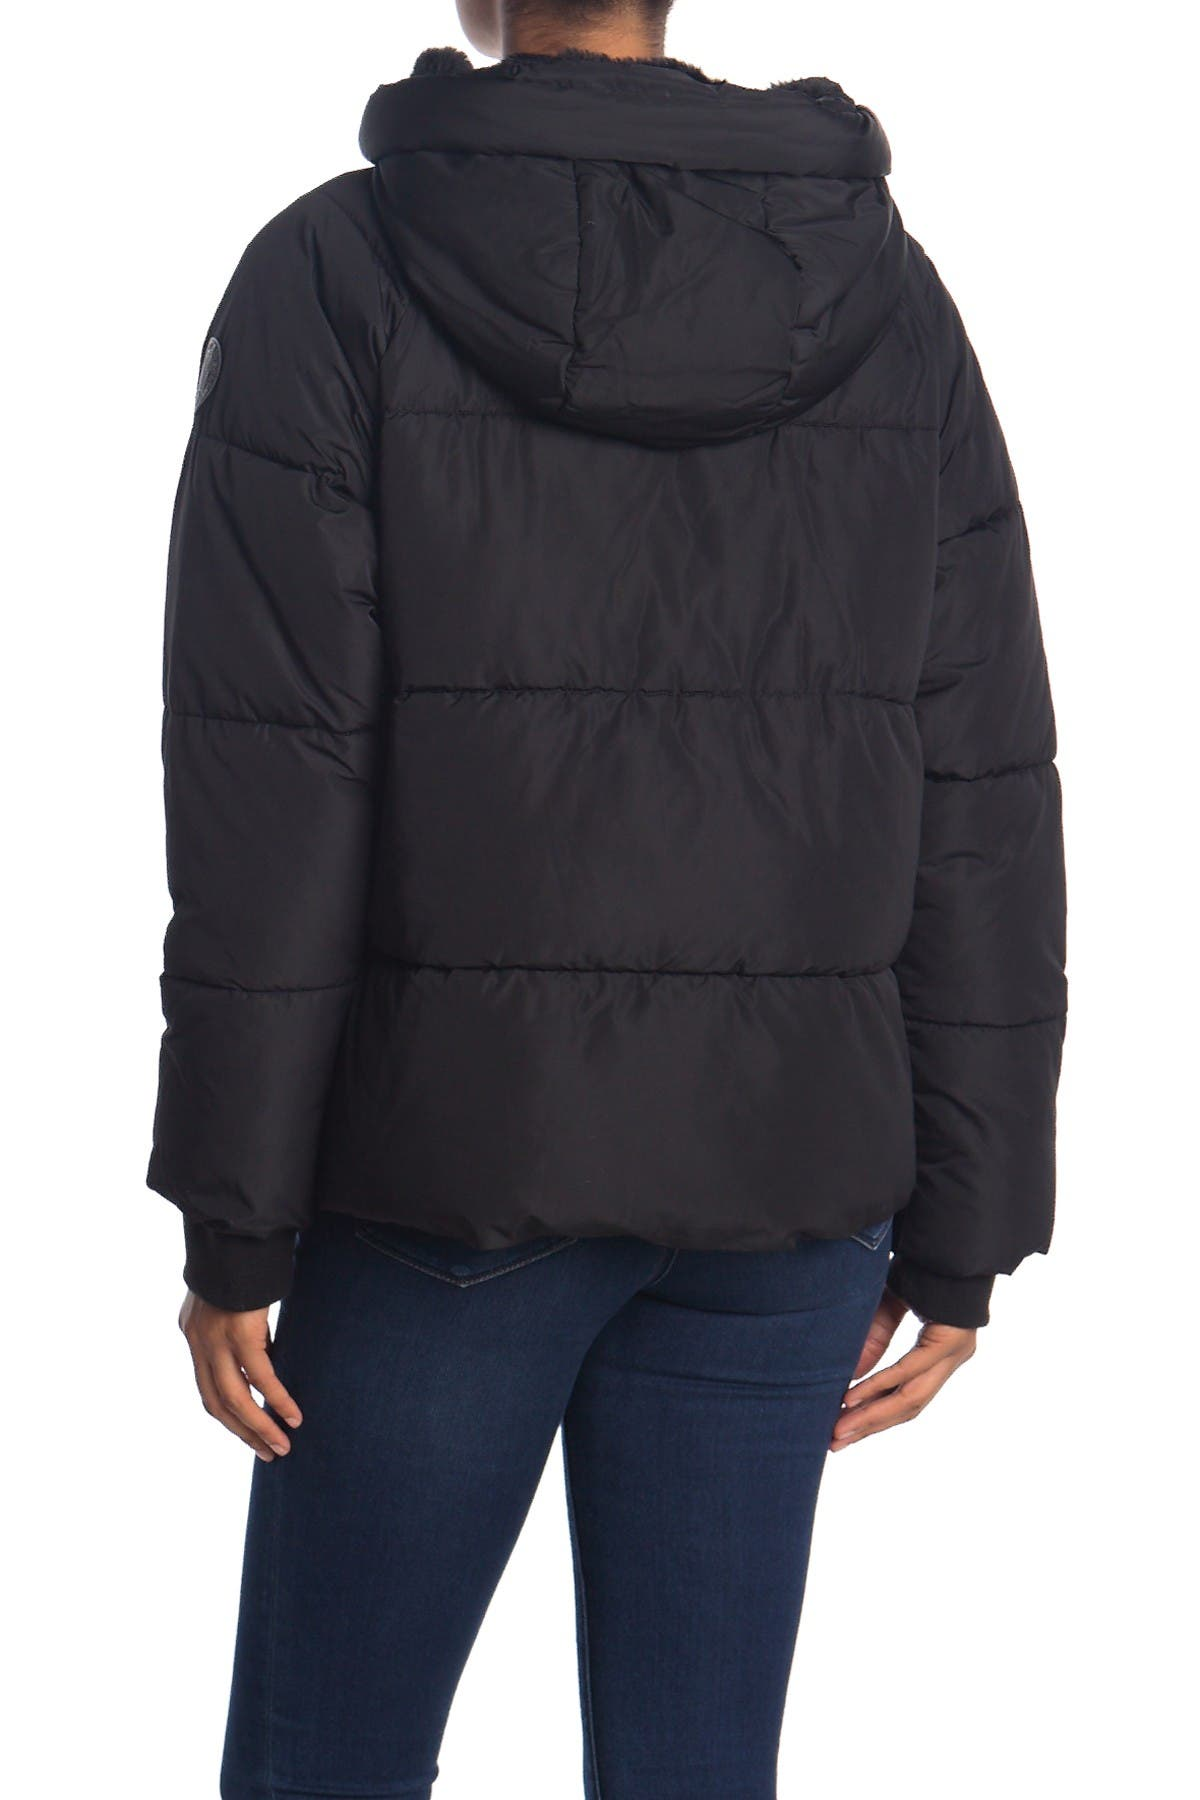 DKNY Short Puffer with Hood